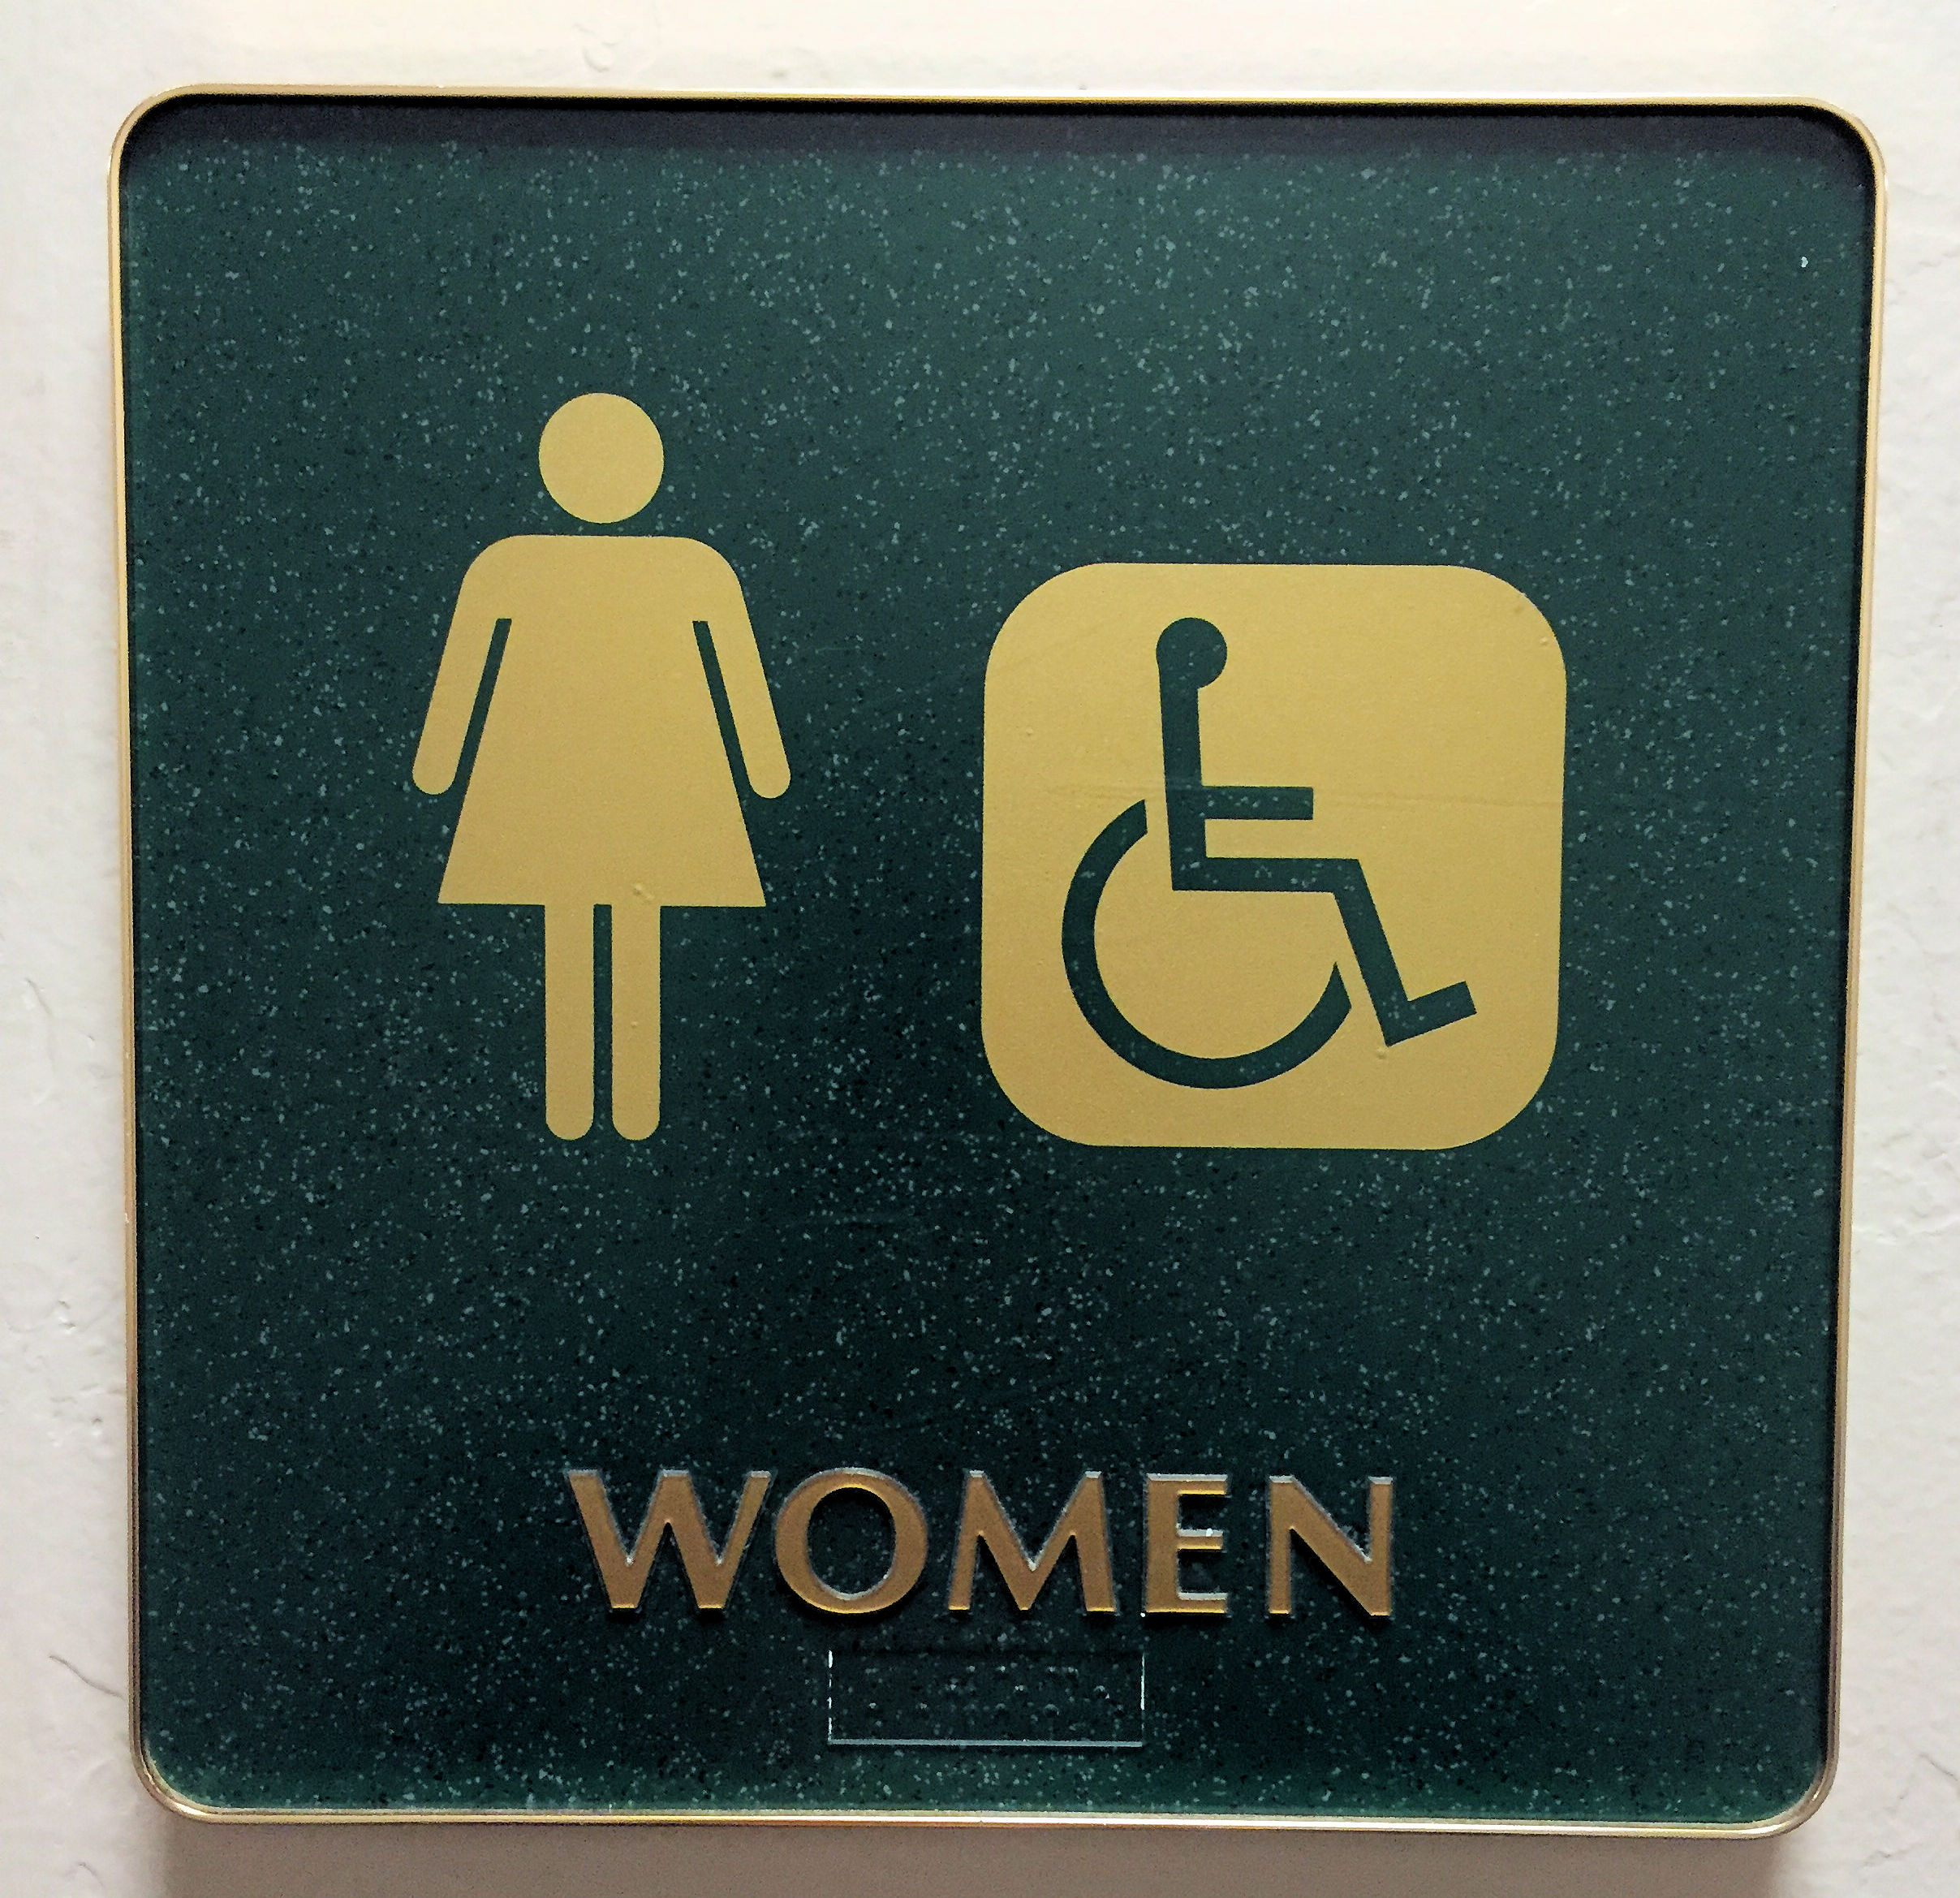 WOMEN- a restroom sign